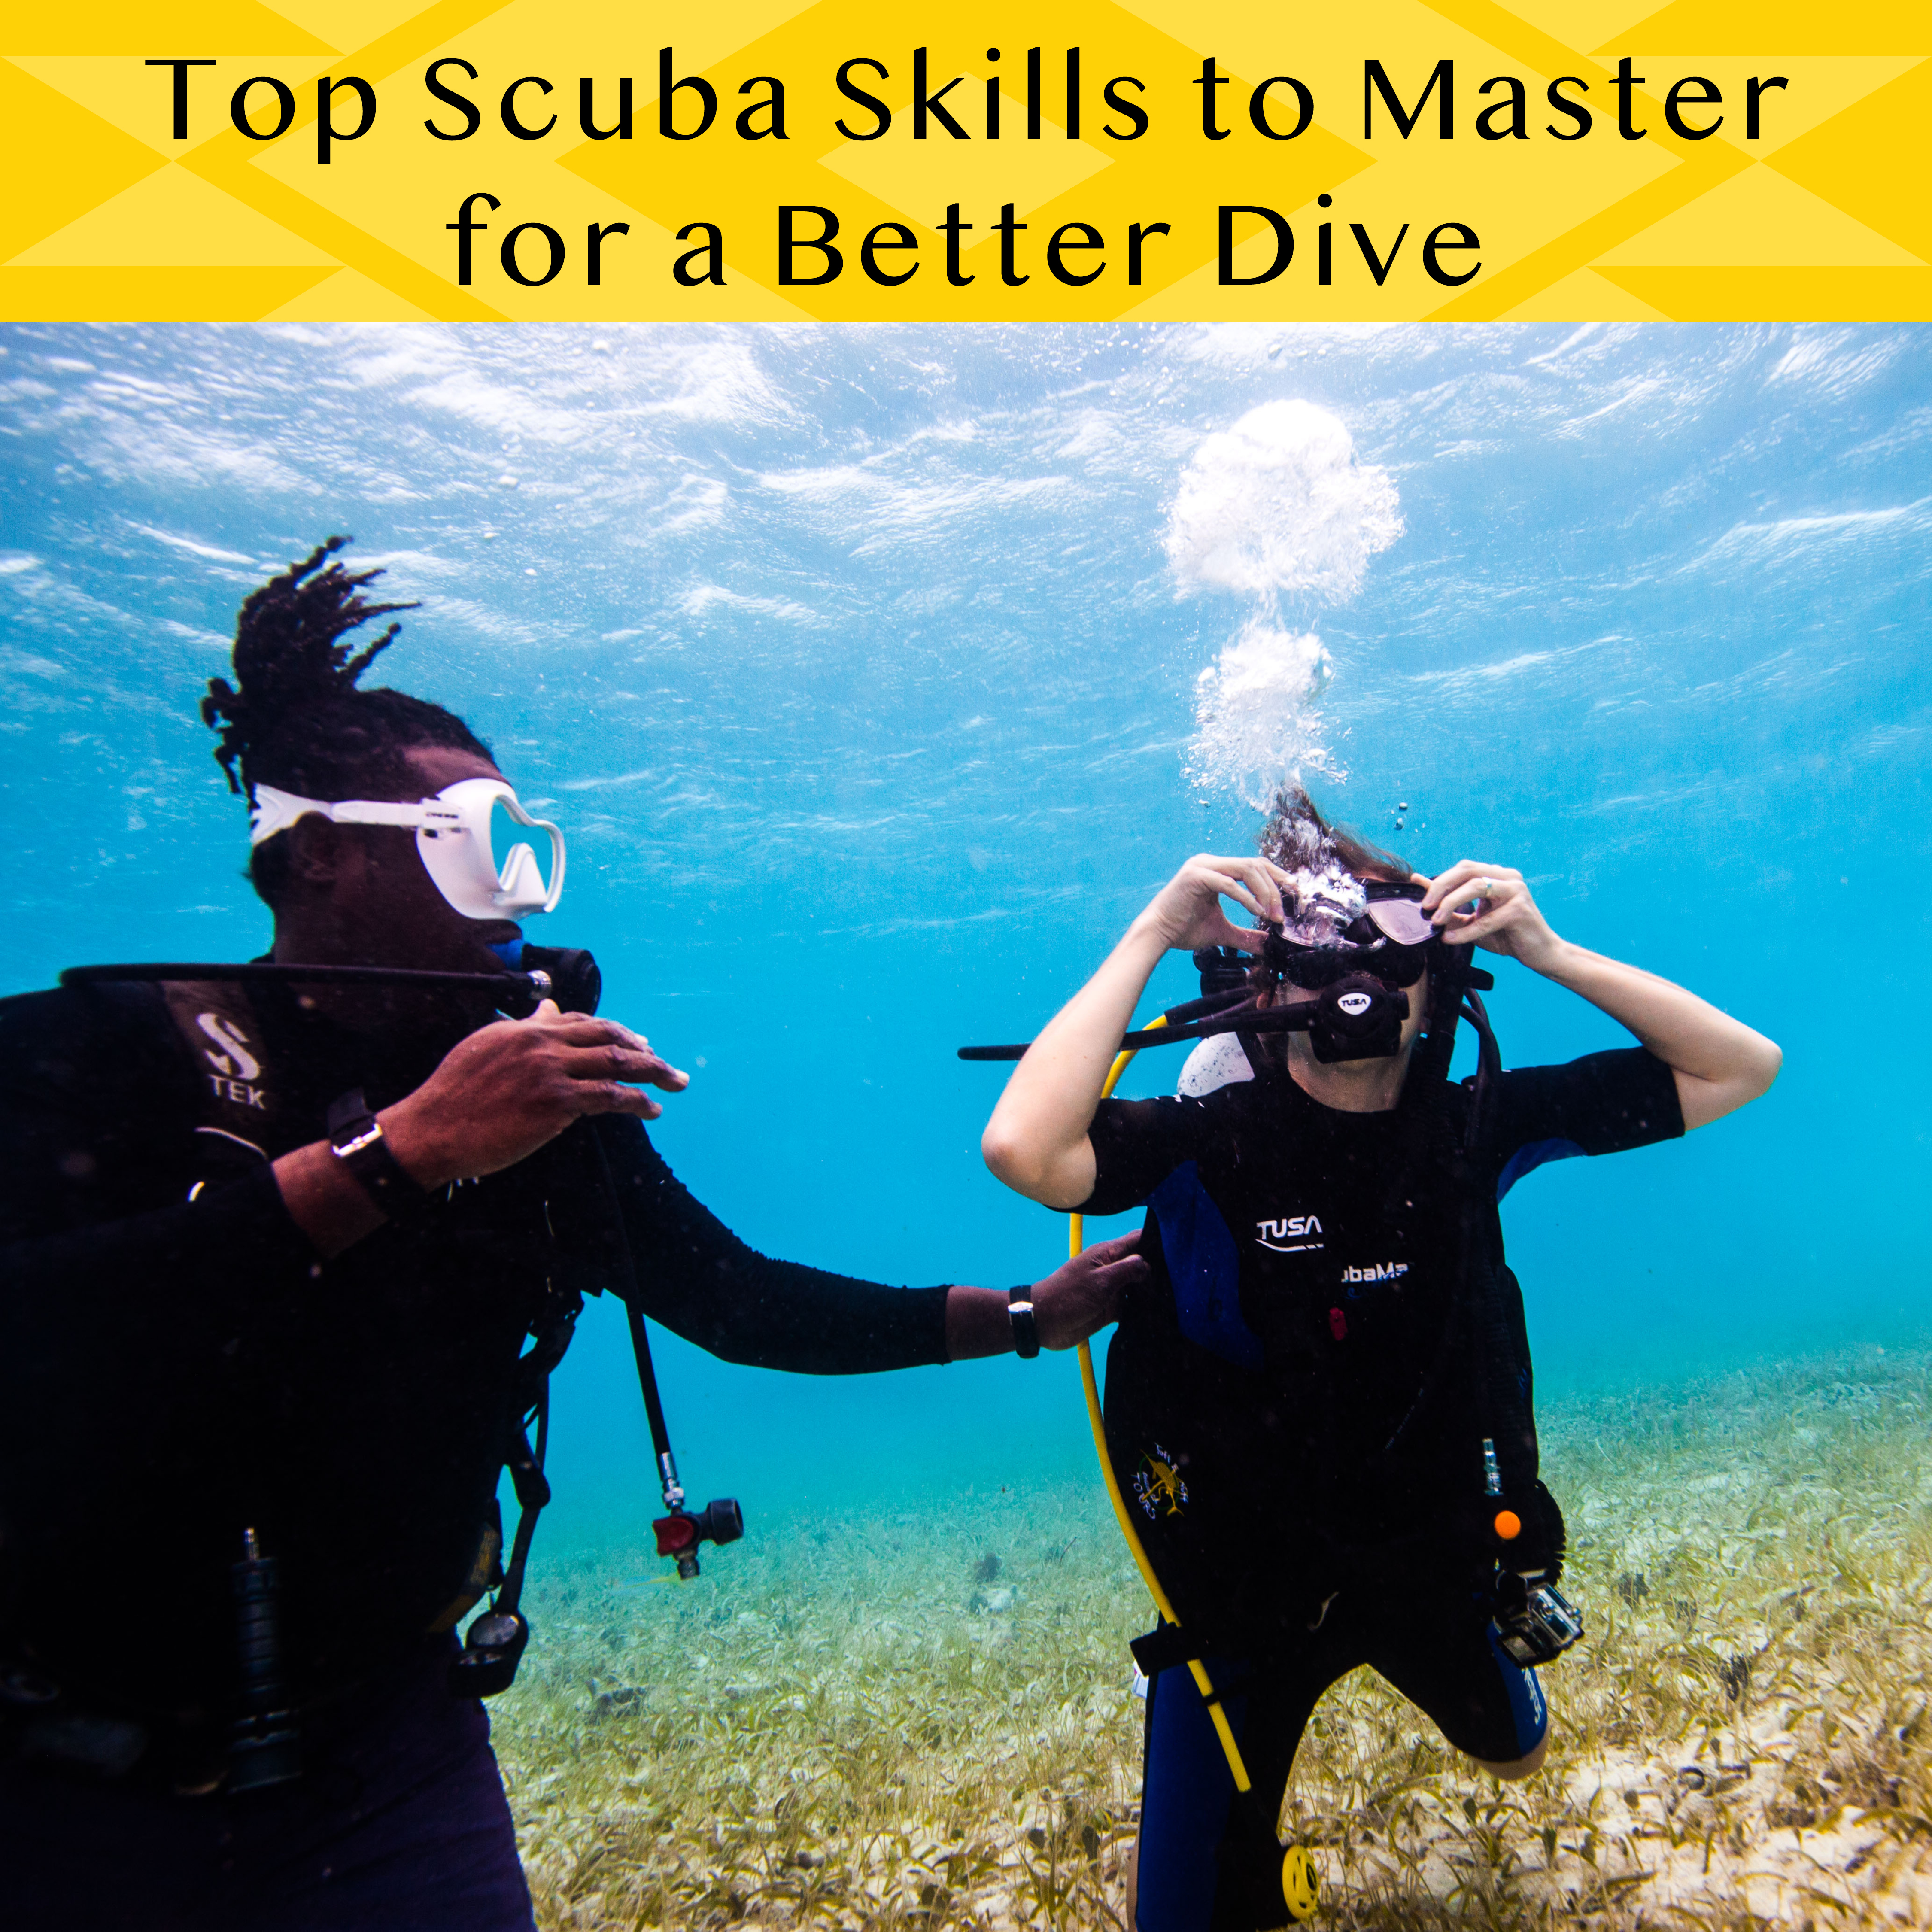 Top Scuba Skills to Master for better dive